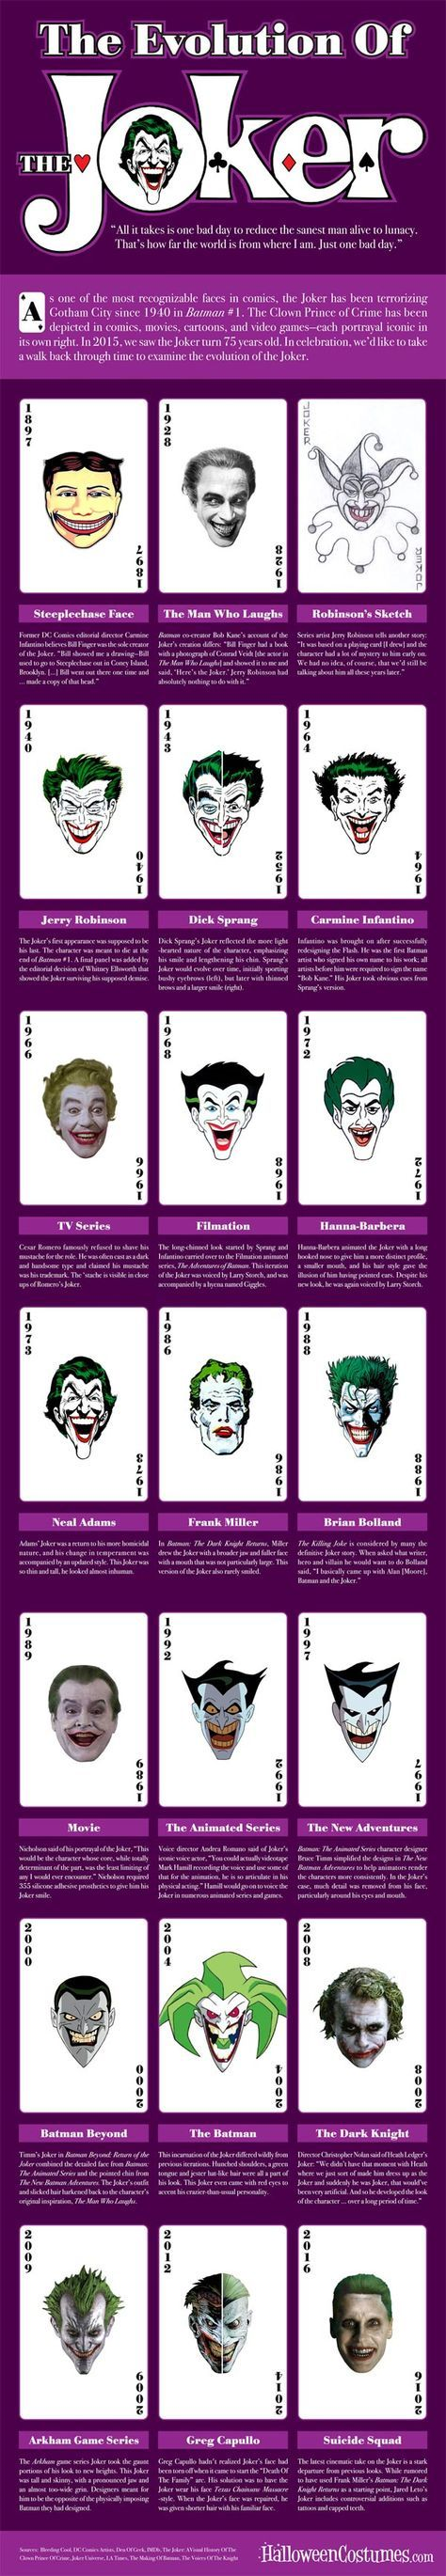 Pics photos batman logo evolution design for samsung galaxy case - A Look At The Evolution Of The Joker By The Folks From Halloweencostumes Com